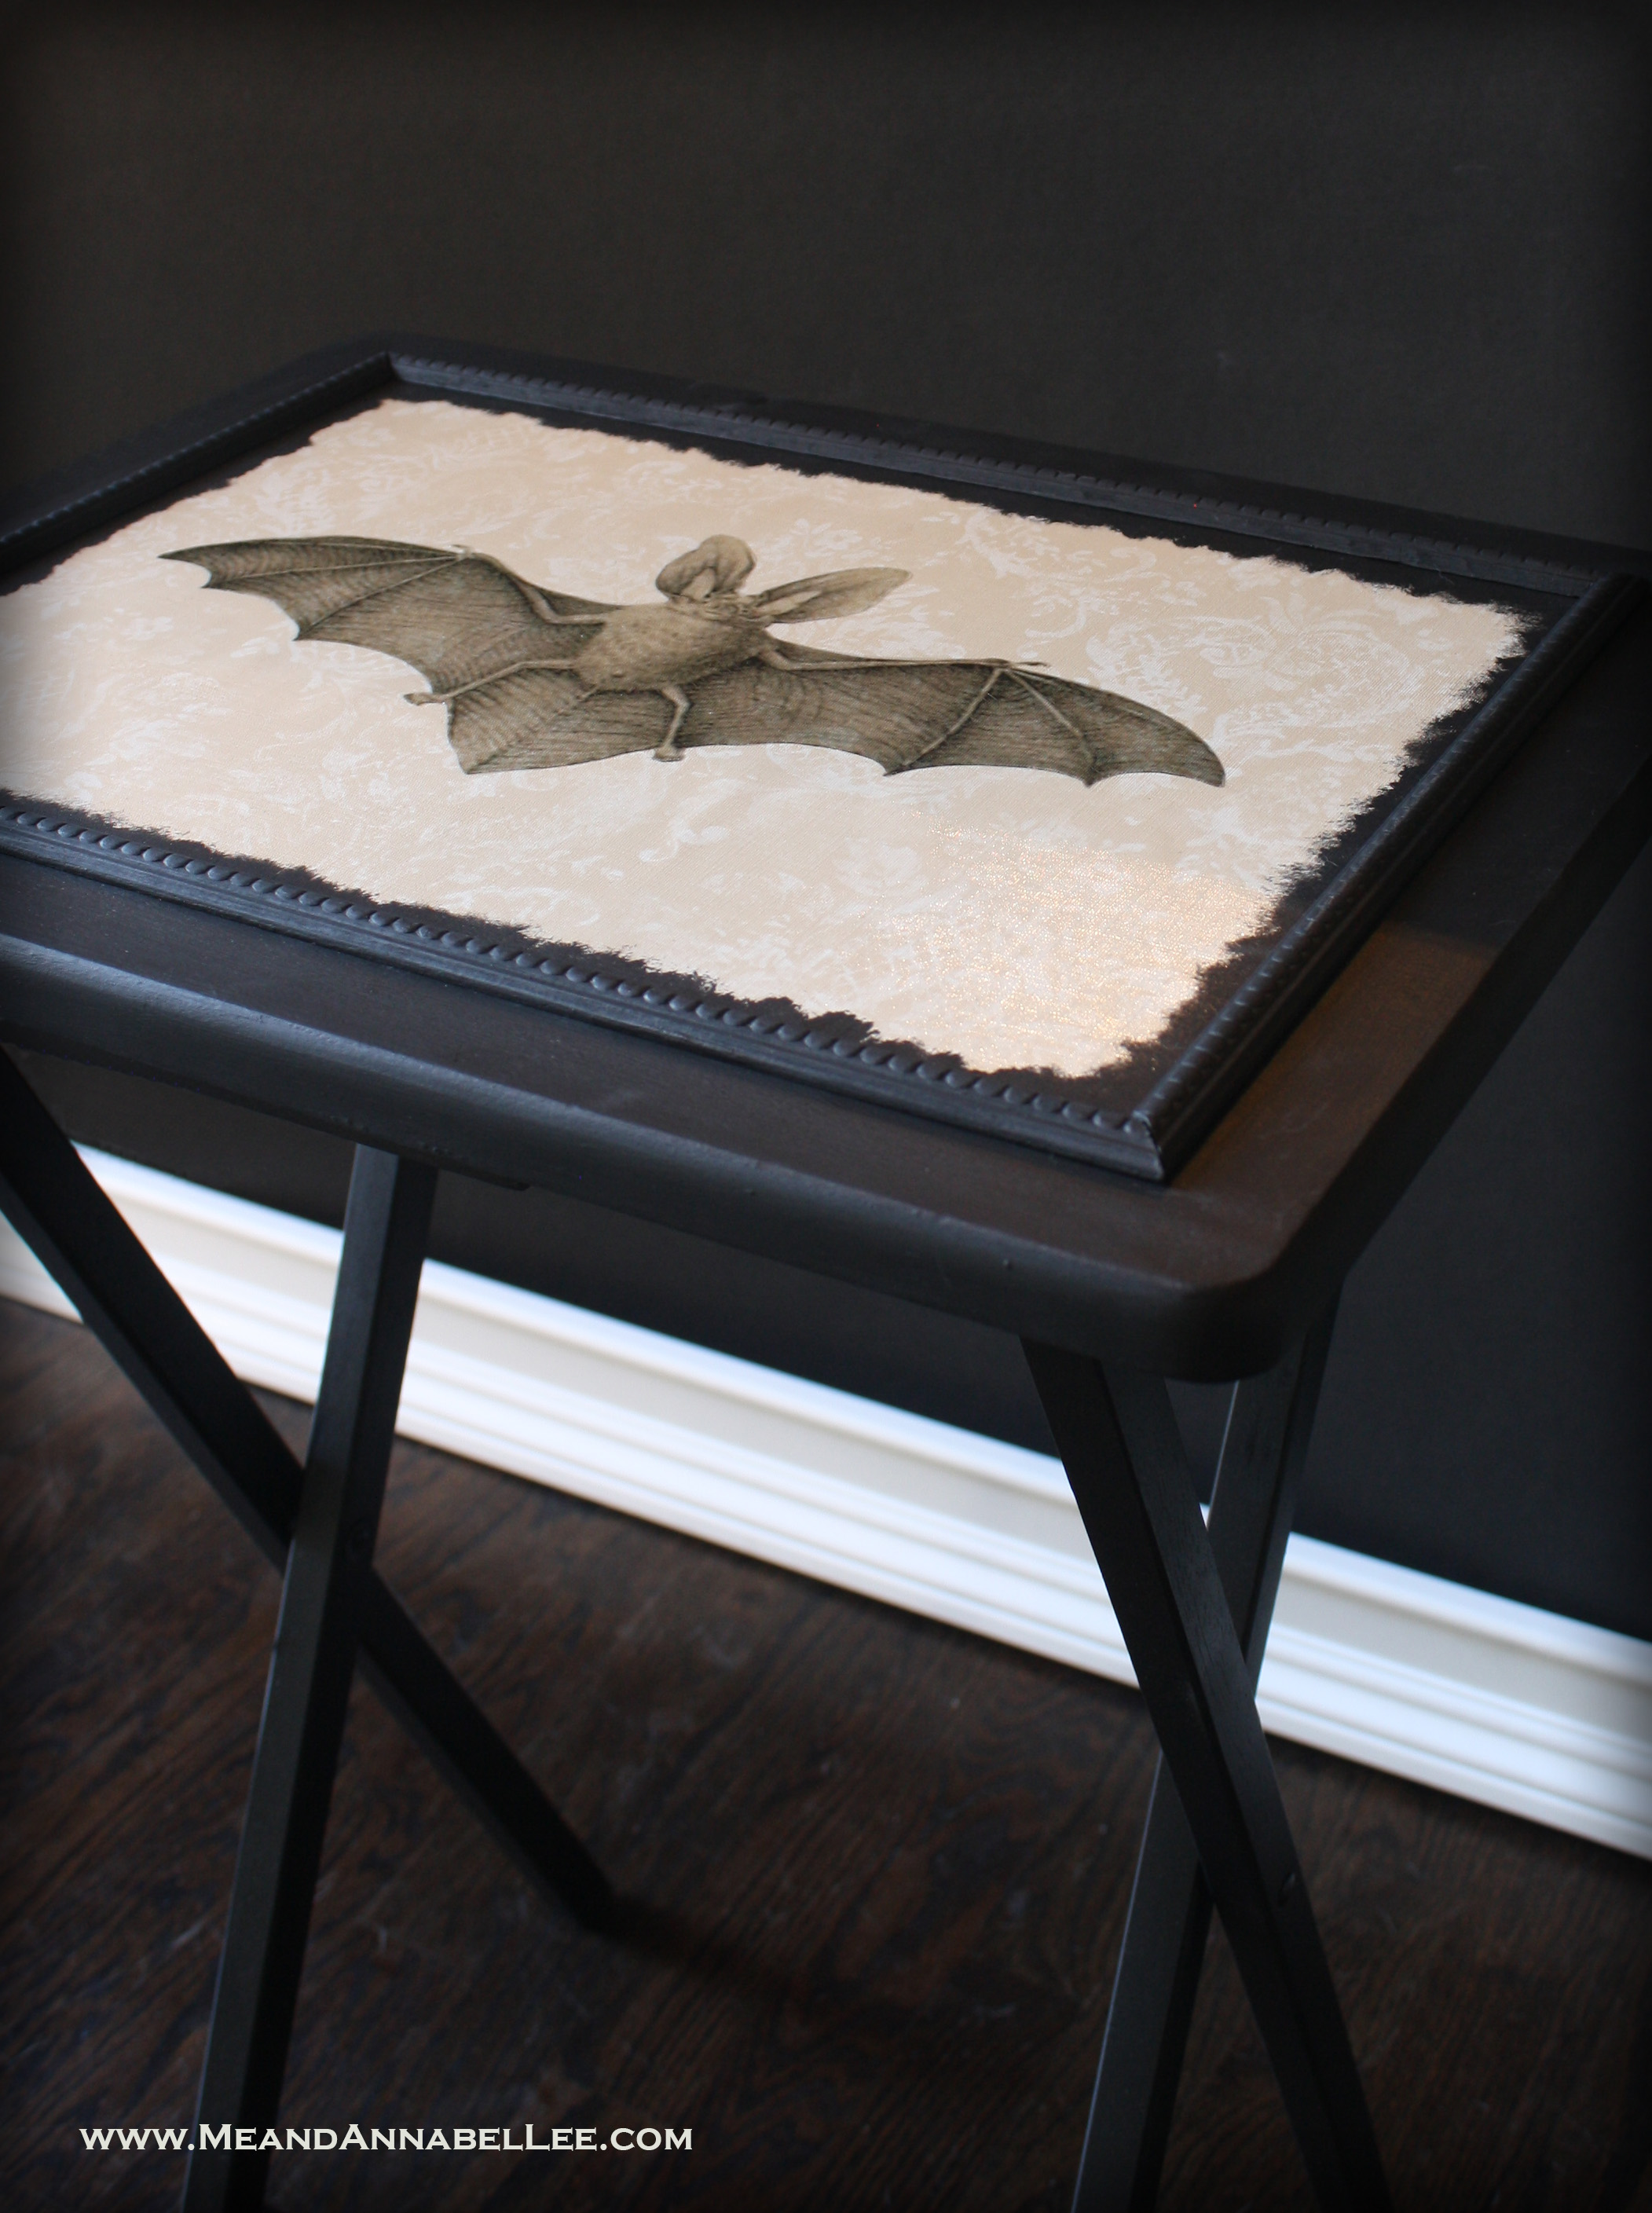 Diy Vintage Bat Tv Tray Table Victorian Gothic Image Transfer Me And Annabel Lee